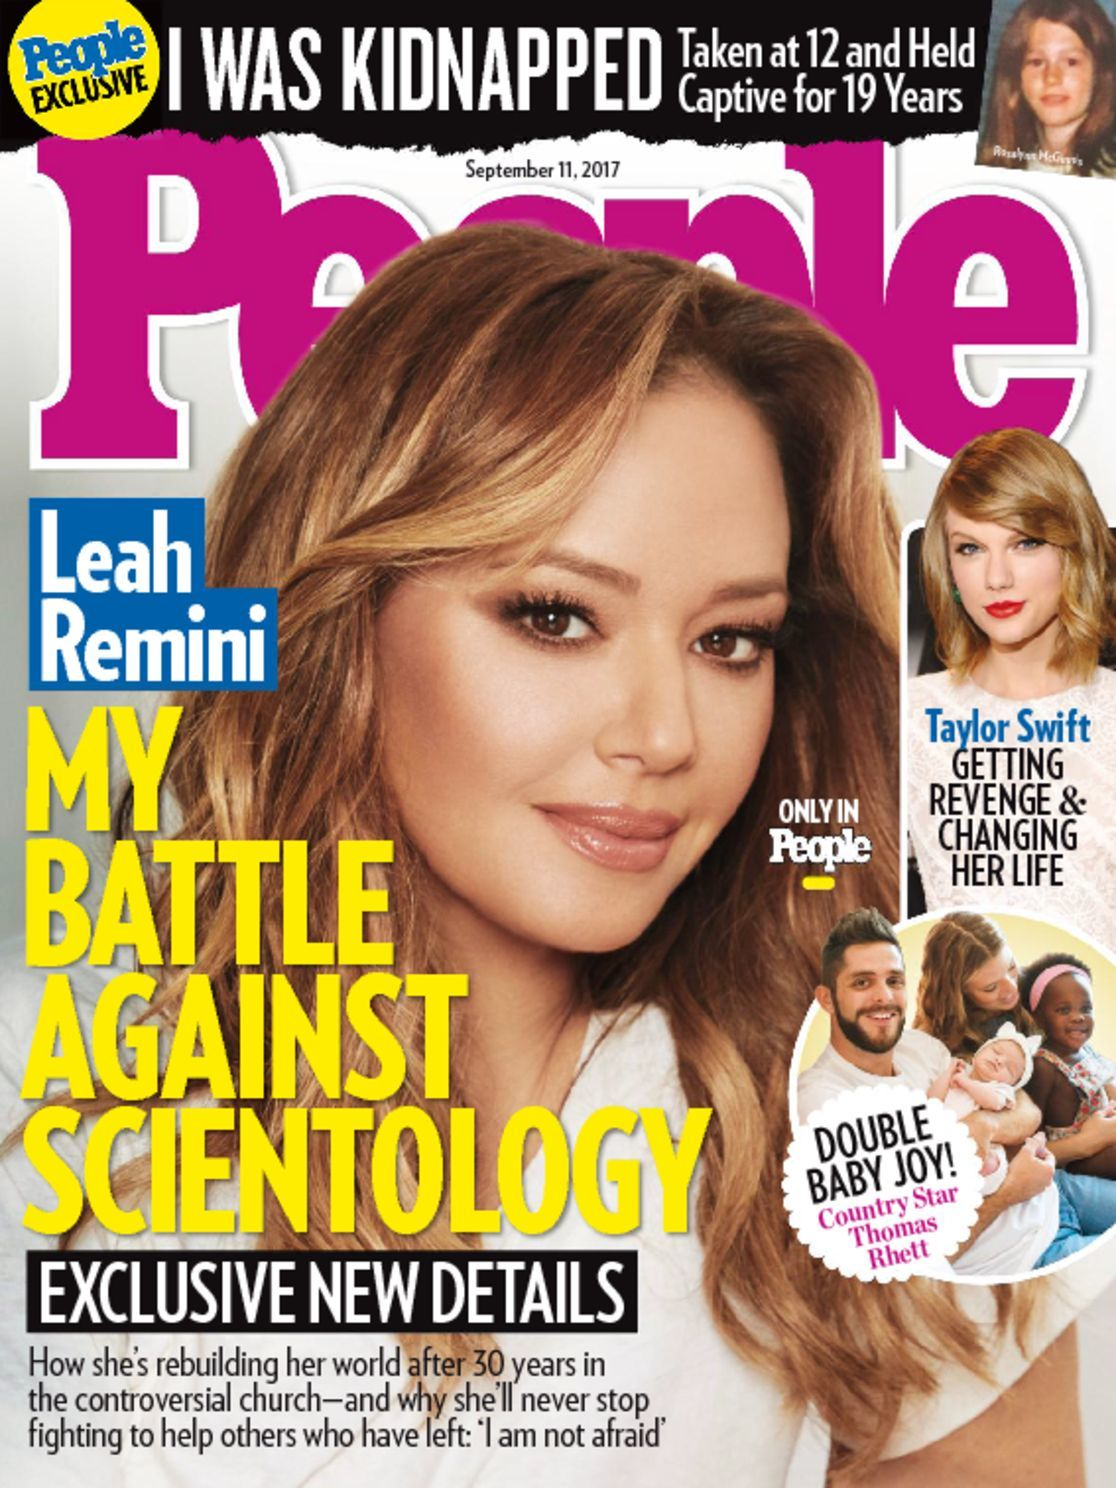 magazine subscription cover gift covers september magazines amazon issue remini card bigotry discountmags scientology engages scientologist brags leah extra january